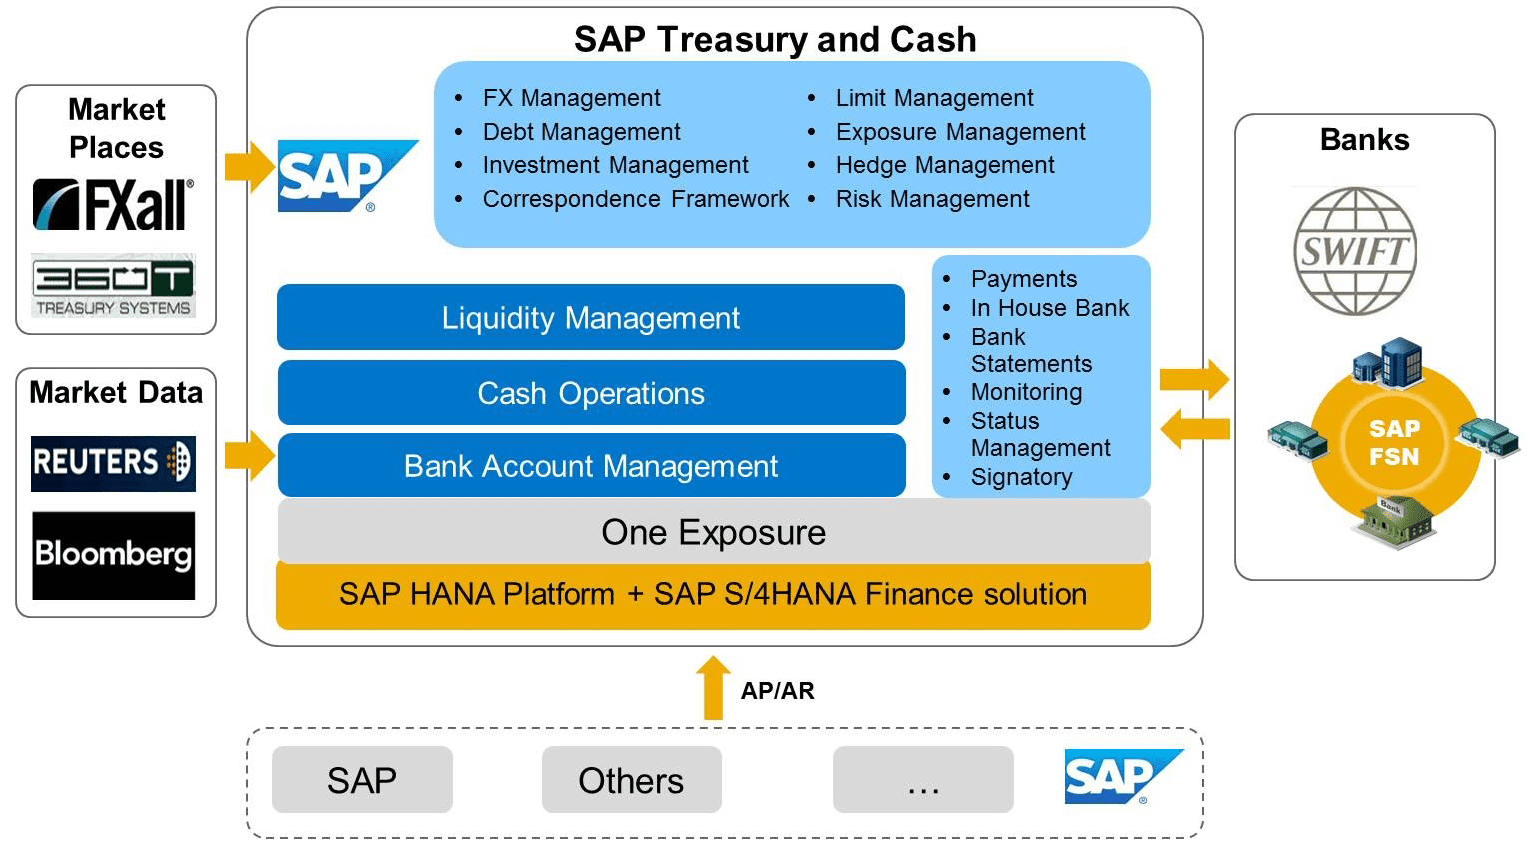 Eursap SAP Blog: SAP S/4HANA Cash Operations - An Overview